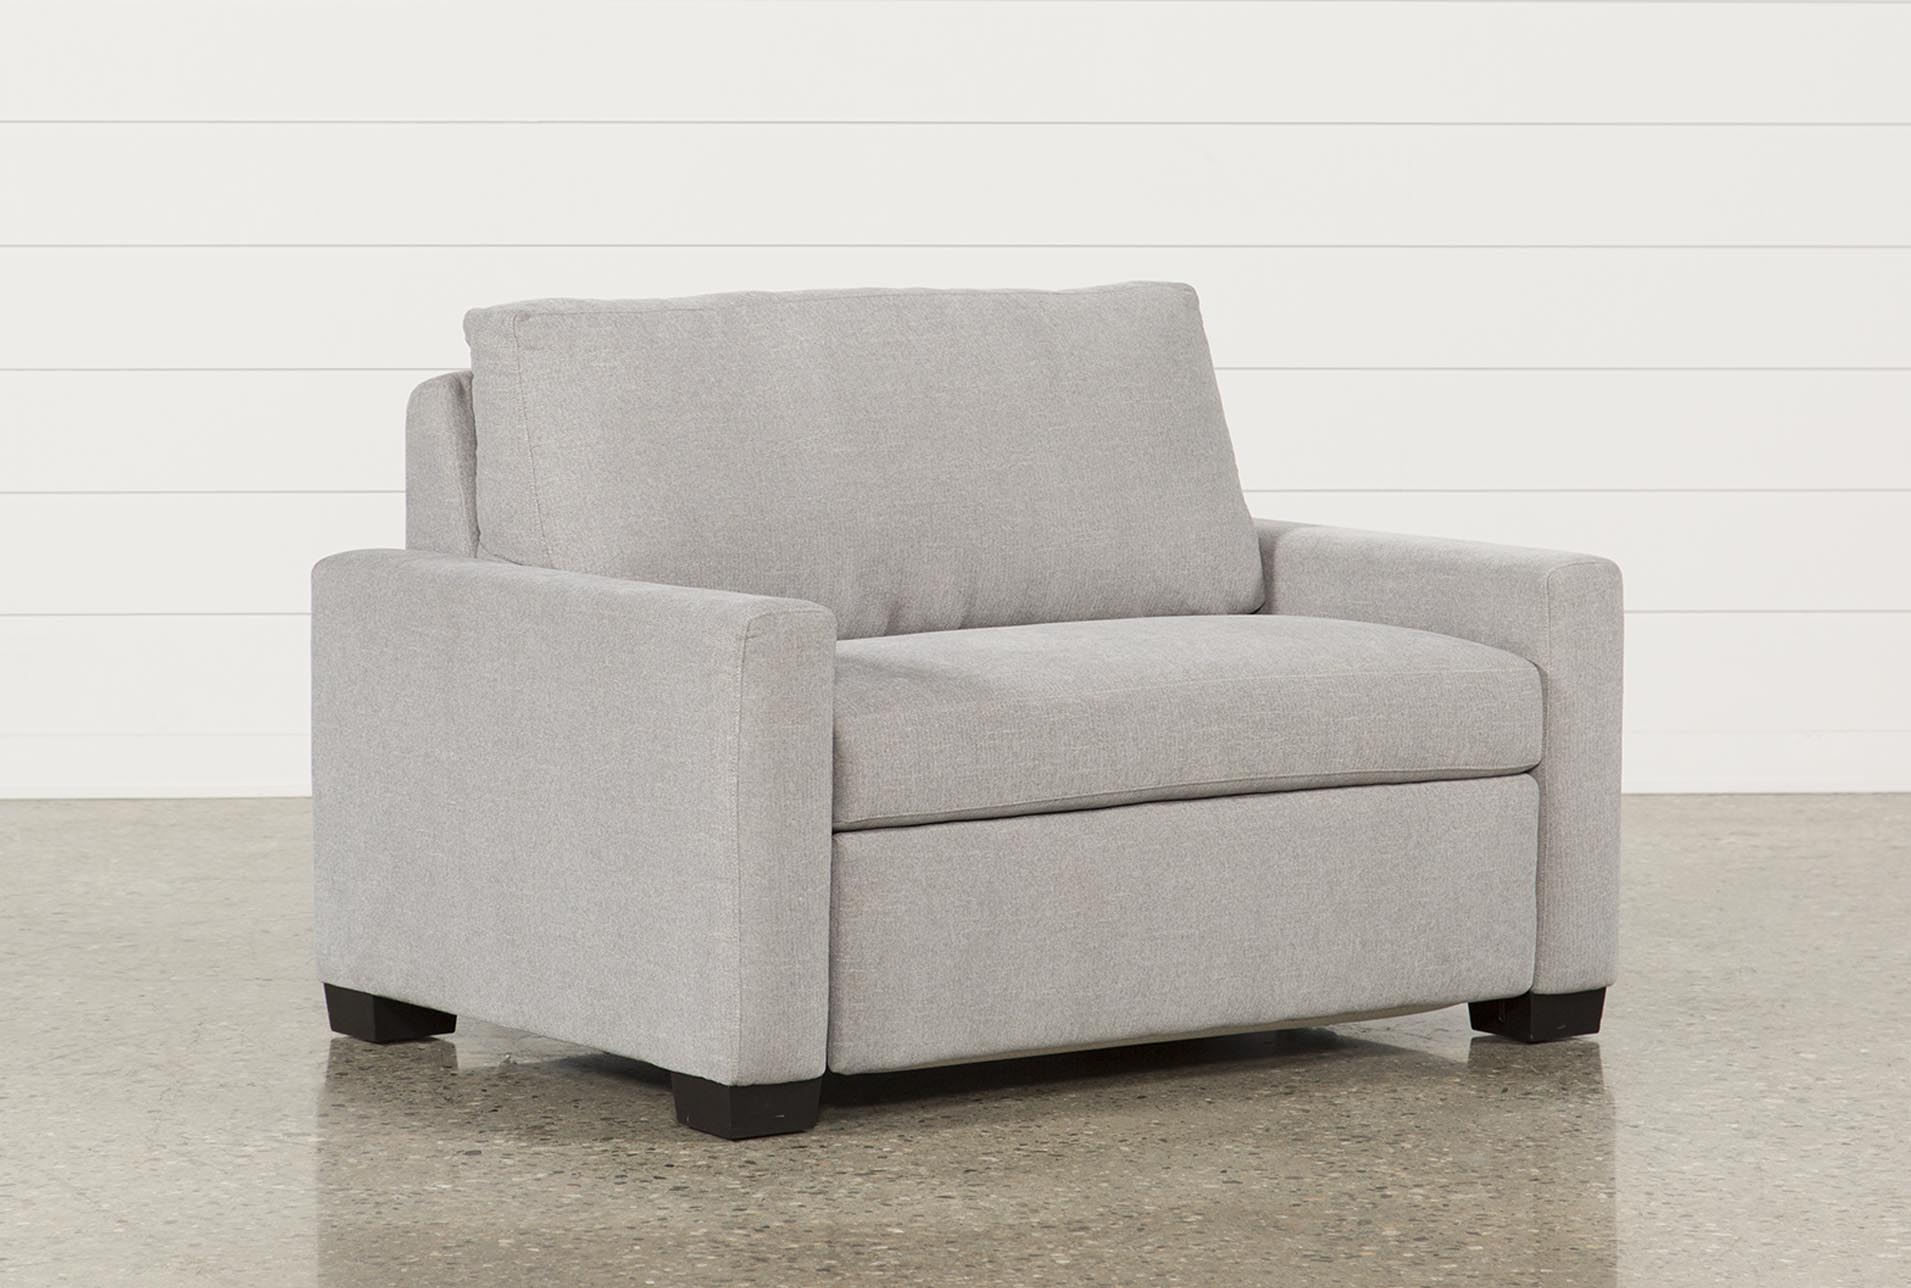 Mackenzie Silverpine Twin Sofa Sleeper (Qty: 1) has been successfully added  to your Cart.